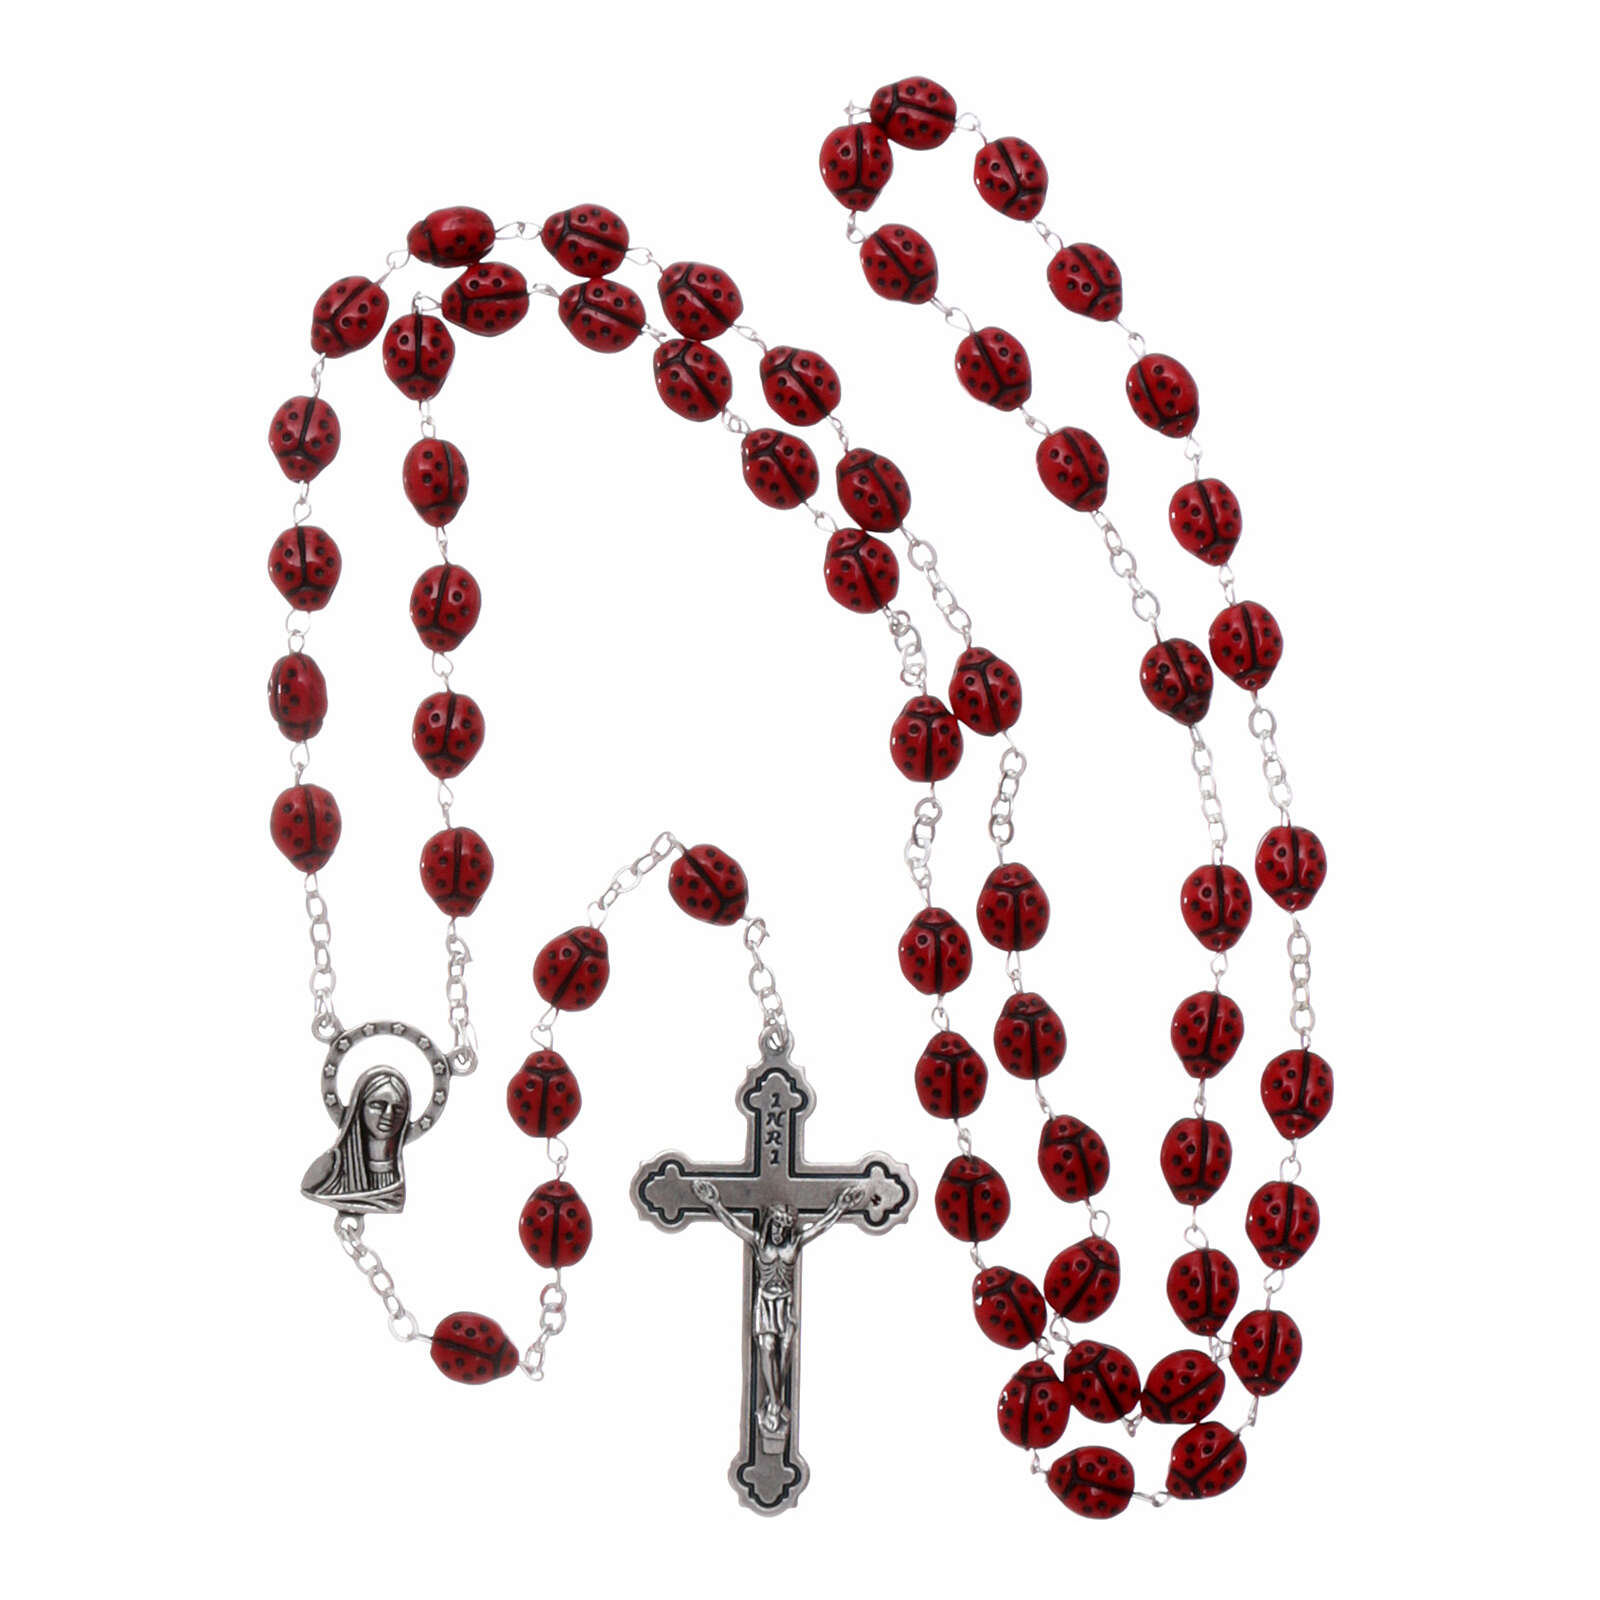 Glass rosary ladybug shaped beads 6 mm 4